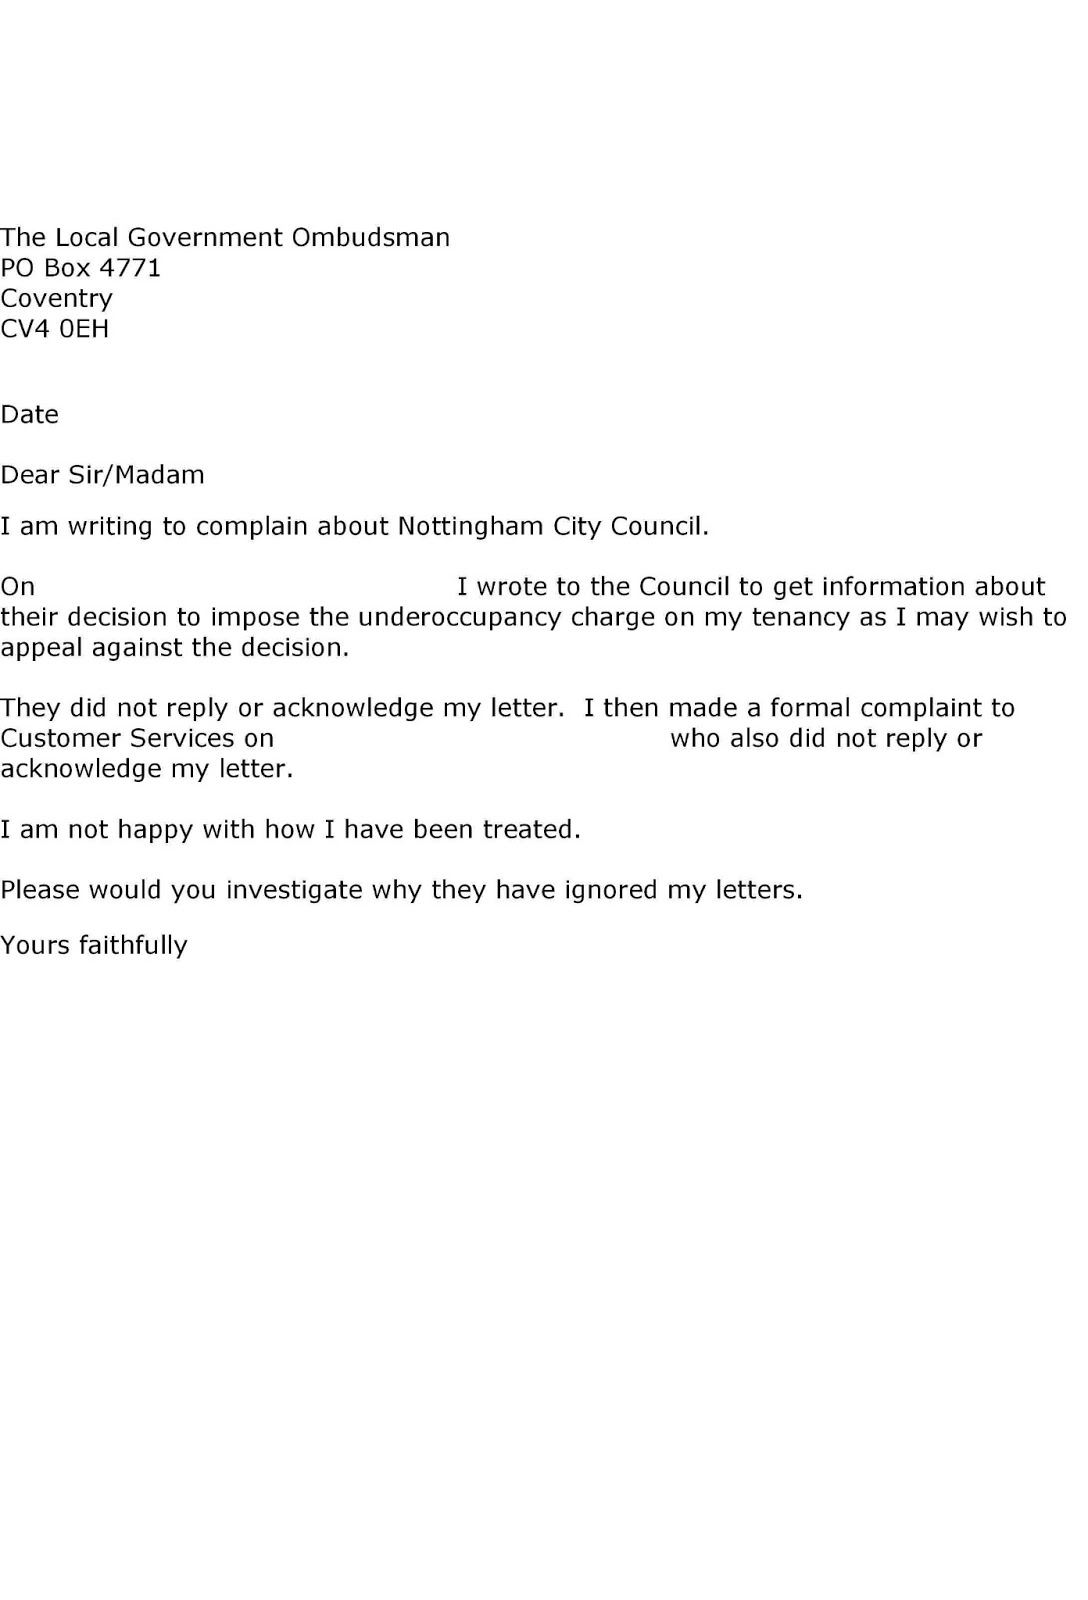 Letter To City Template on letter format, letter of community service, letter to employees about change, letter business, letter a craft, letter gift tags, letter e crafts to make with preschoolers, letter pattern, letter of interest, letter writing, letter layout, letter of credit, letter of recommendation for a teacher, letter texture, letter of resignation from employment, letter font, letter requesting termination of services, letter from pastor to church, letter background, letter page,